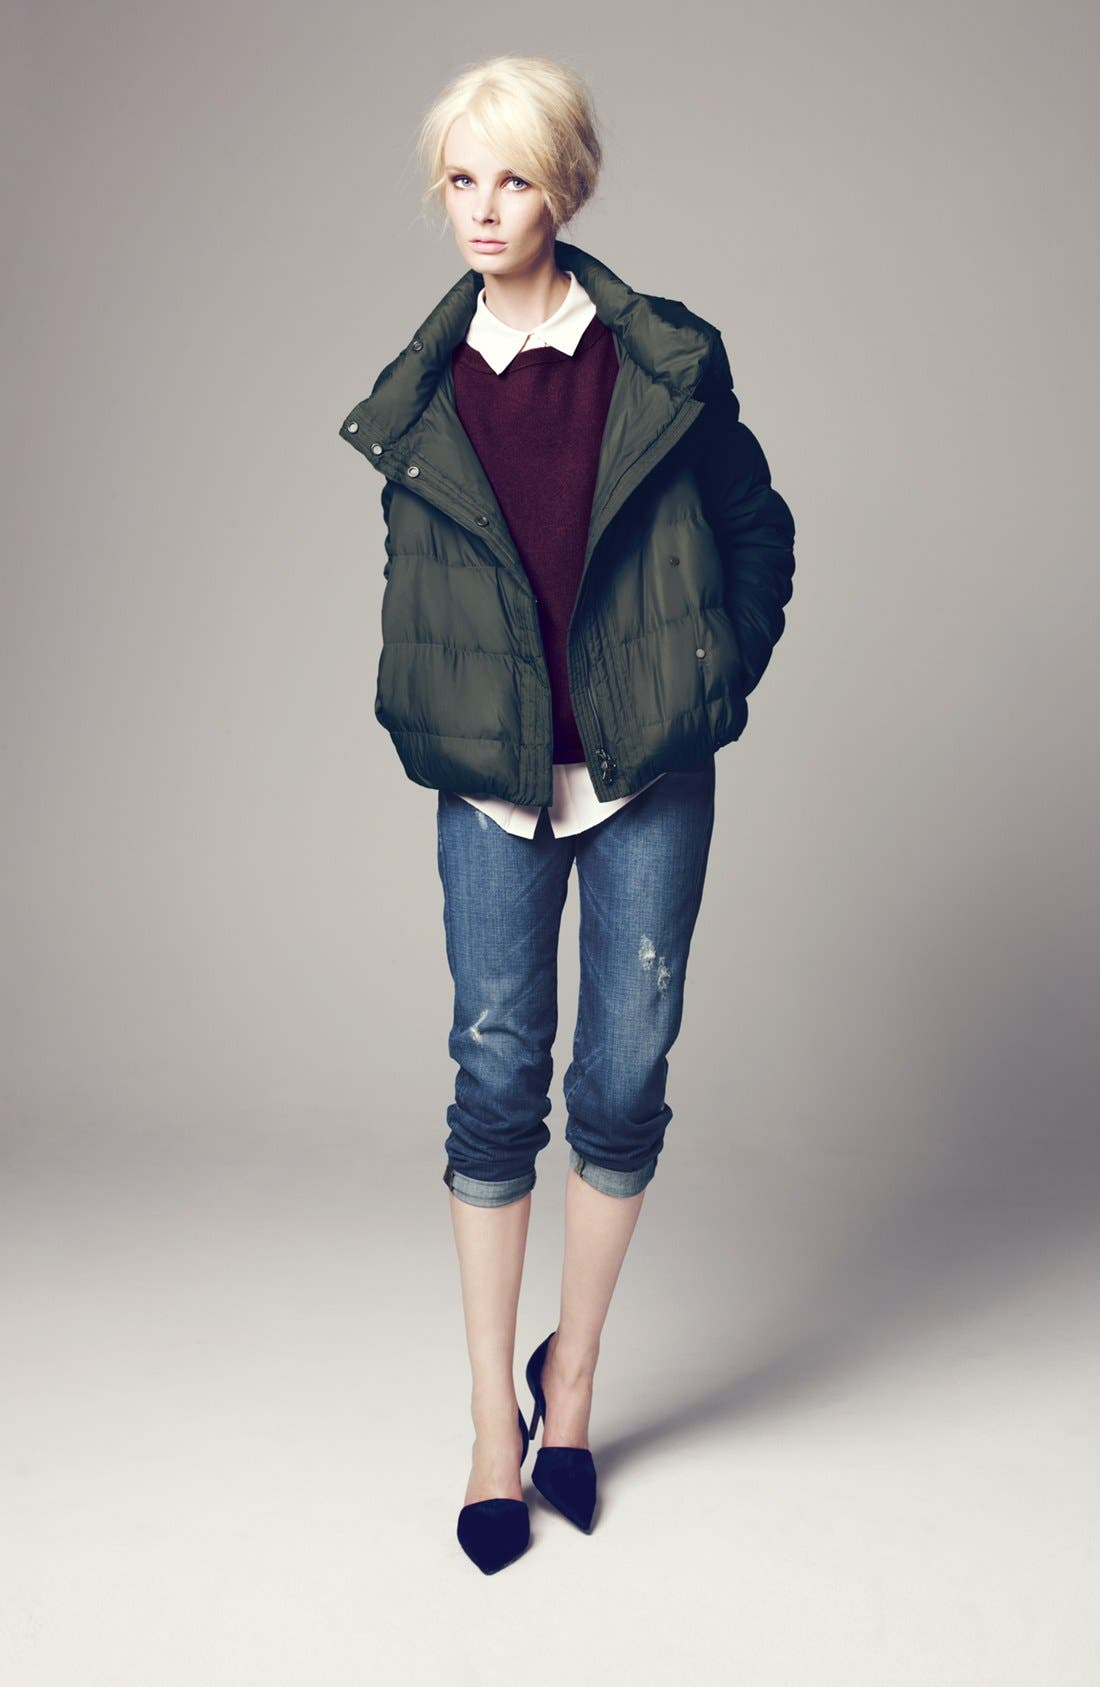 Main Image - Vince Jacket, Cashmere Sweater, Silk Blouse & Jeans